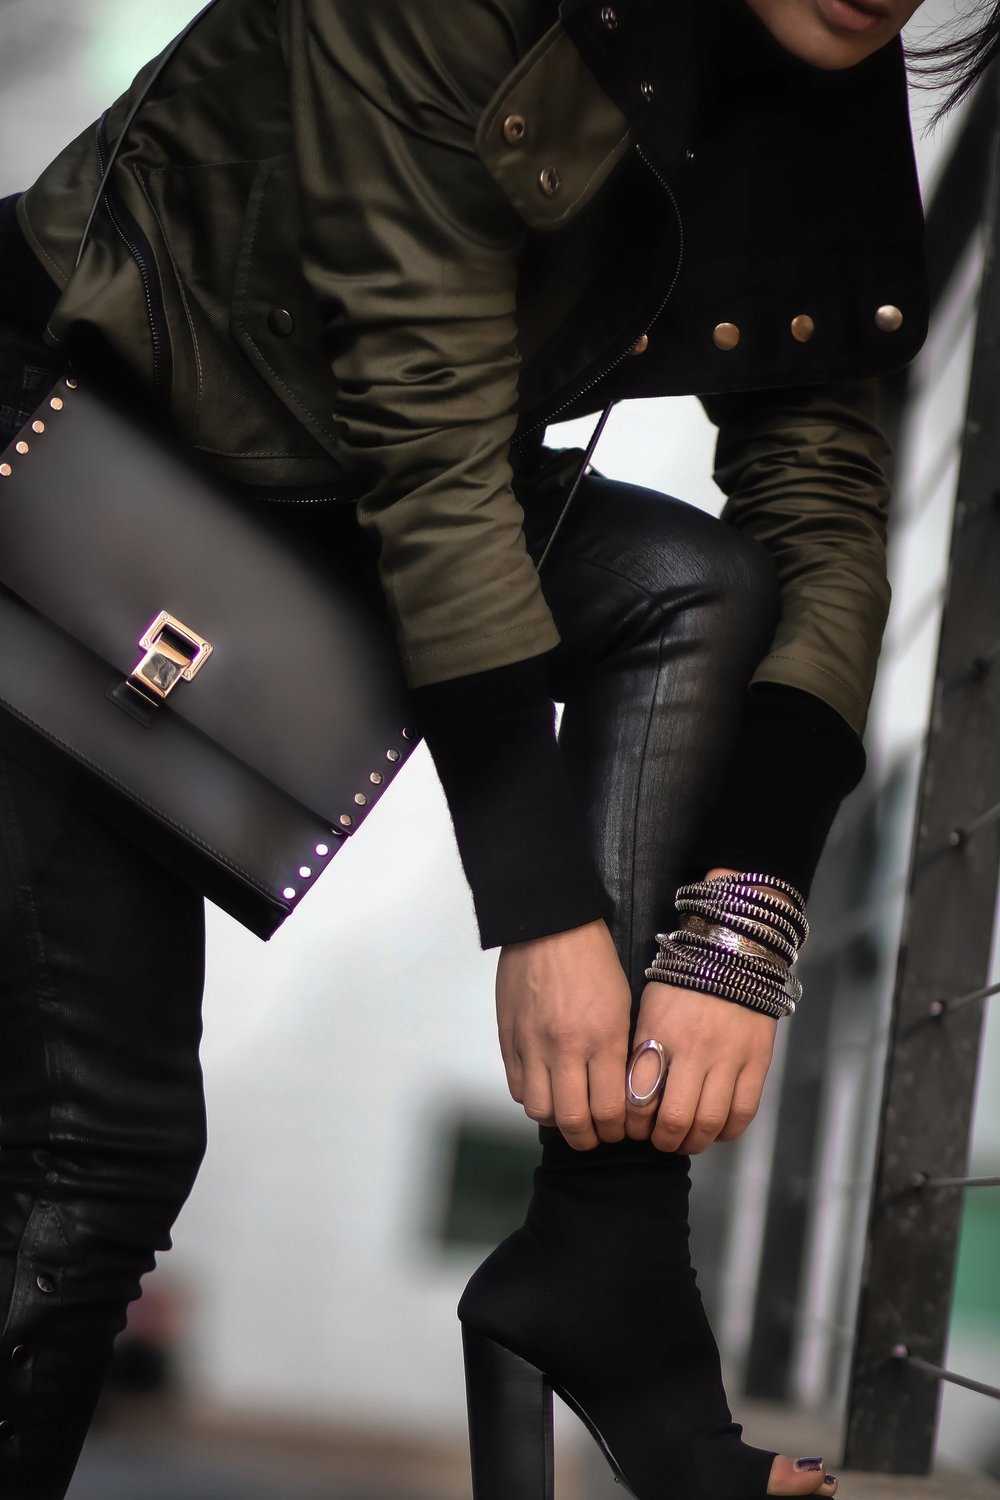 Isabel-Alexander-Clothia-Proenza-bag-TheDarkShop-zipper-bracelet-closeup